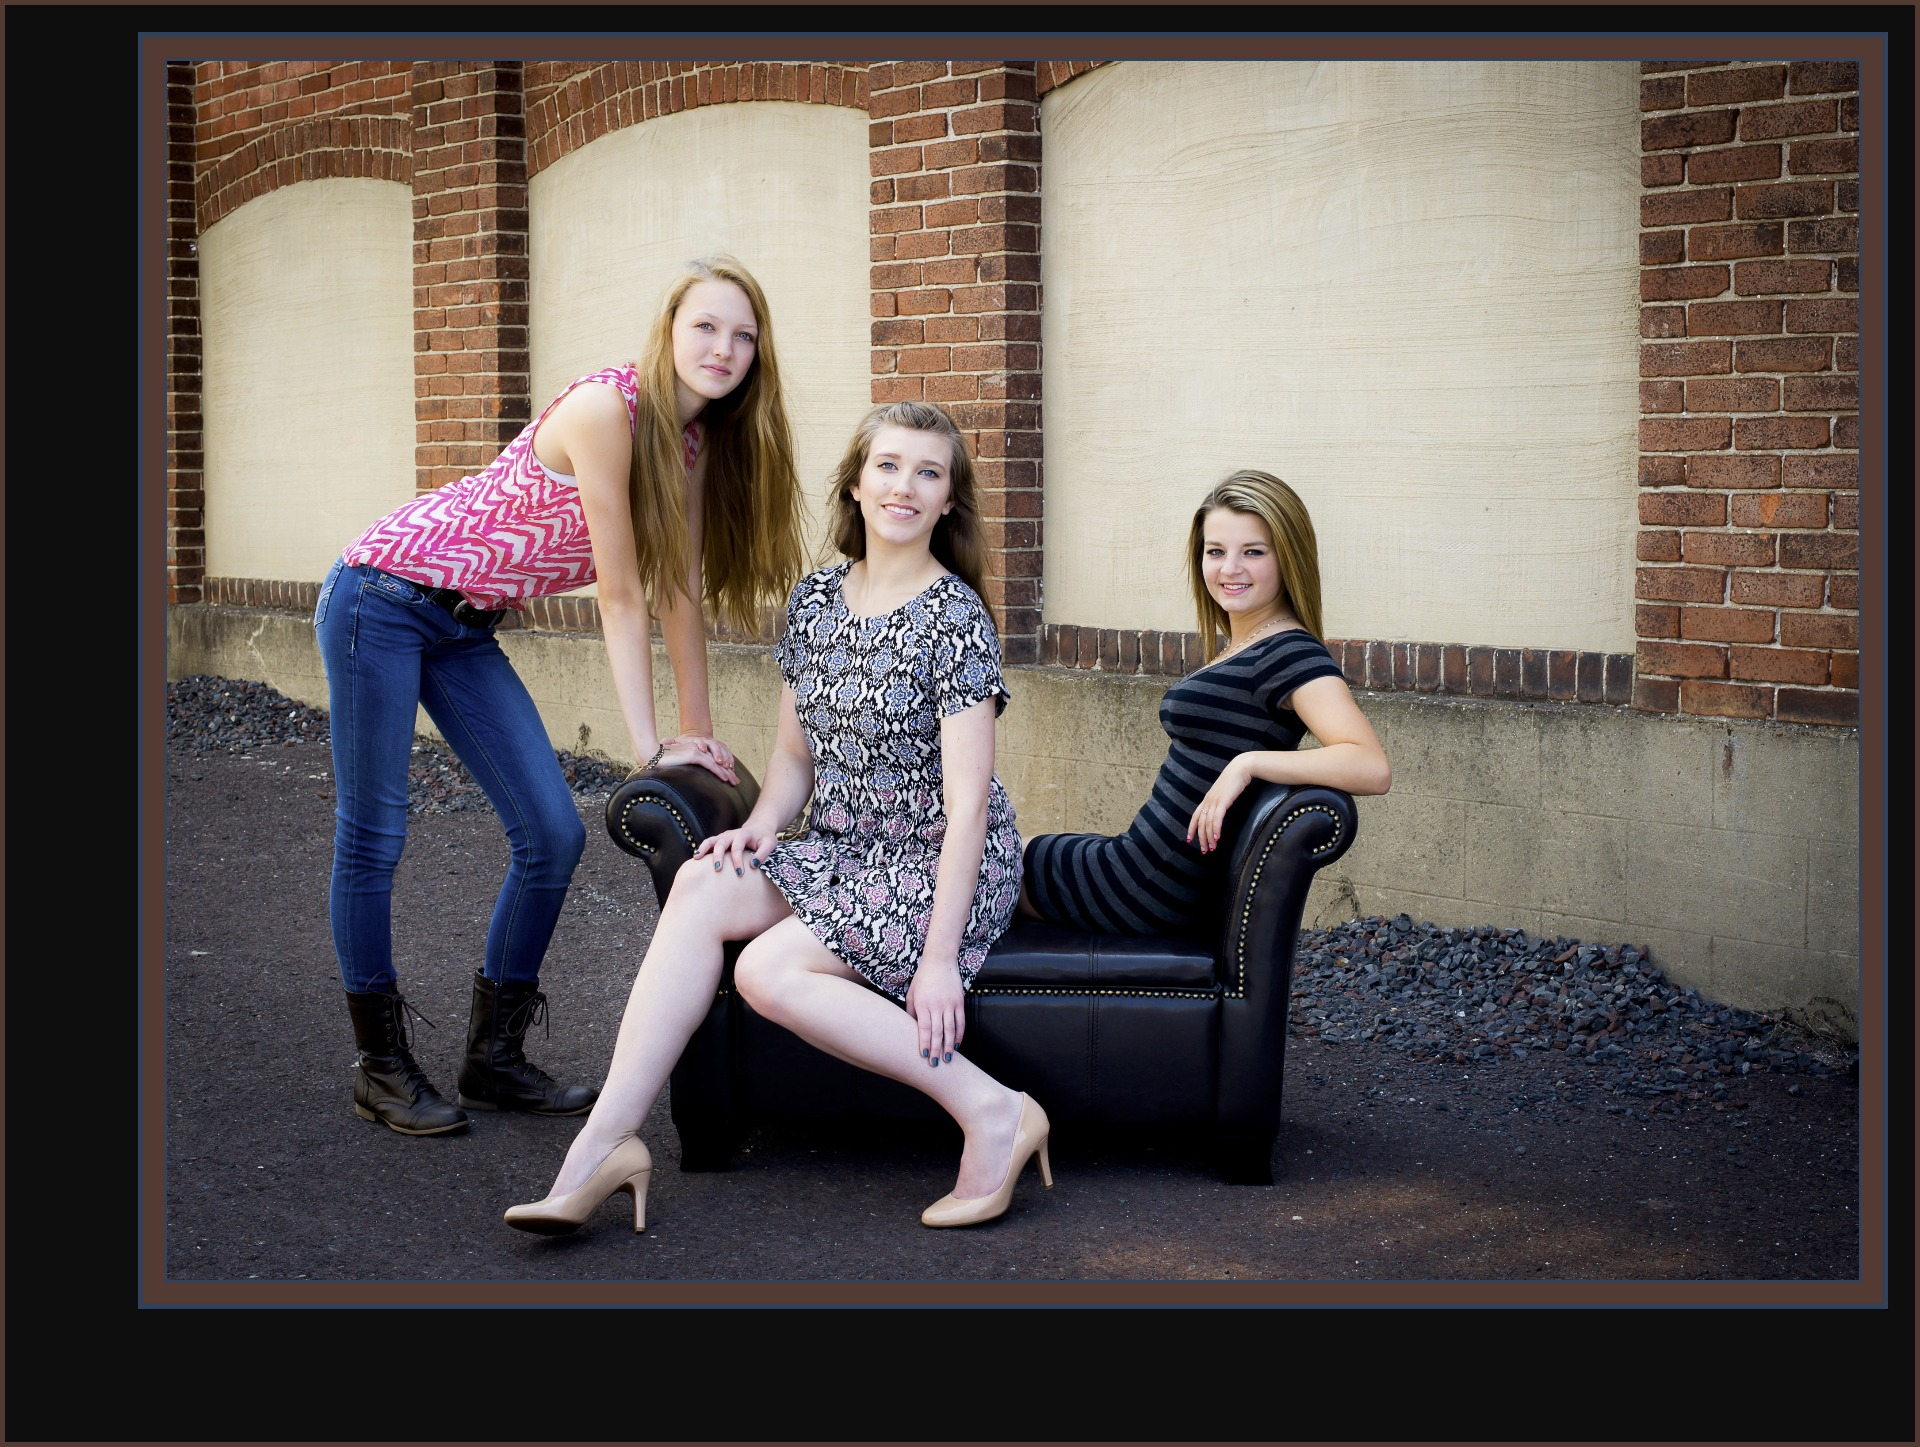 high school seniors, senior girls, high school juniors, high school photography, teen portraits, family portraits